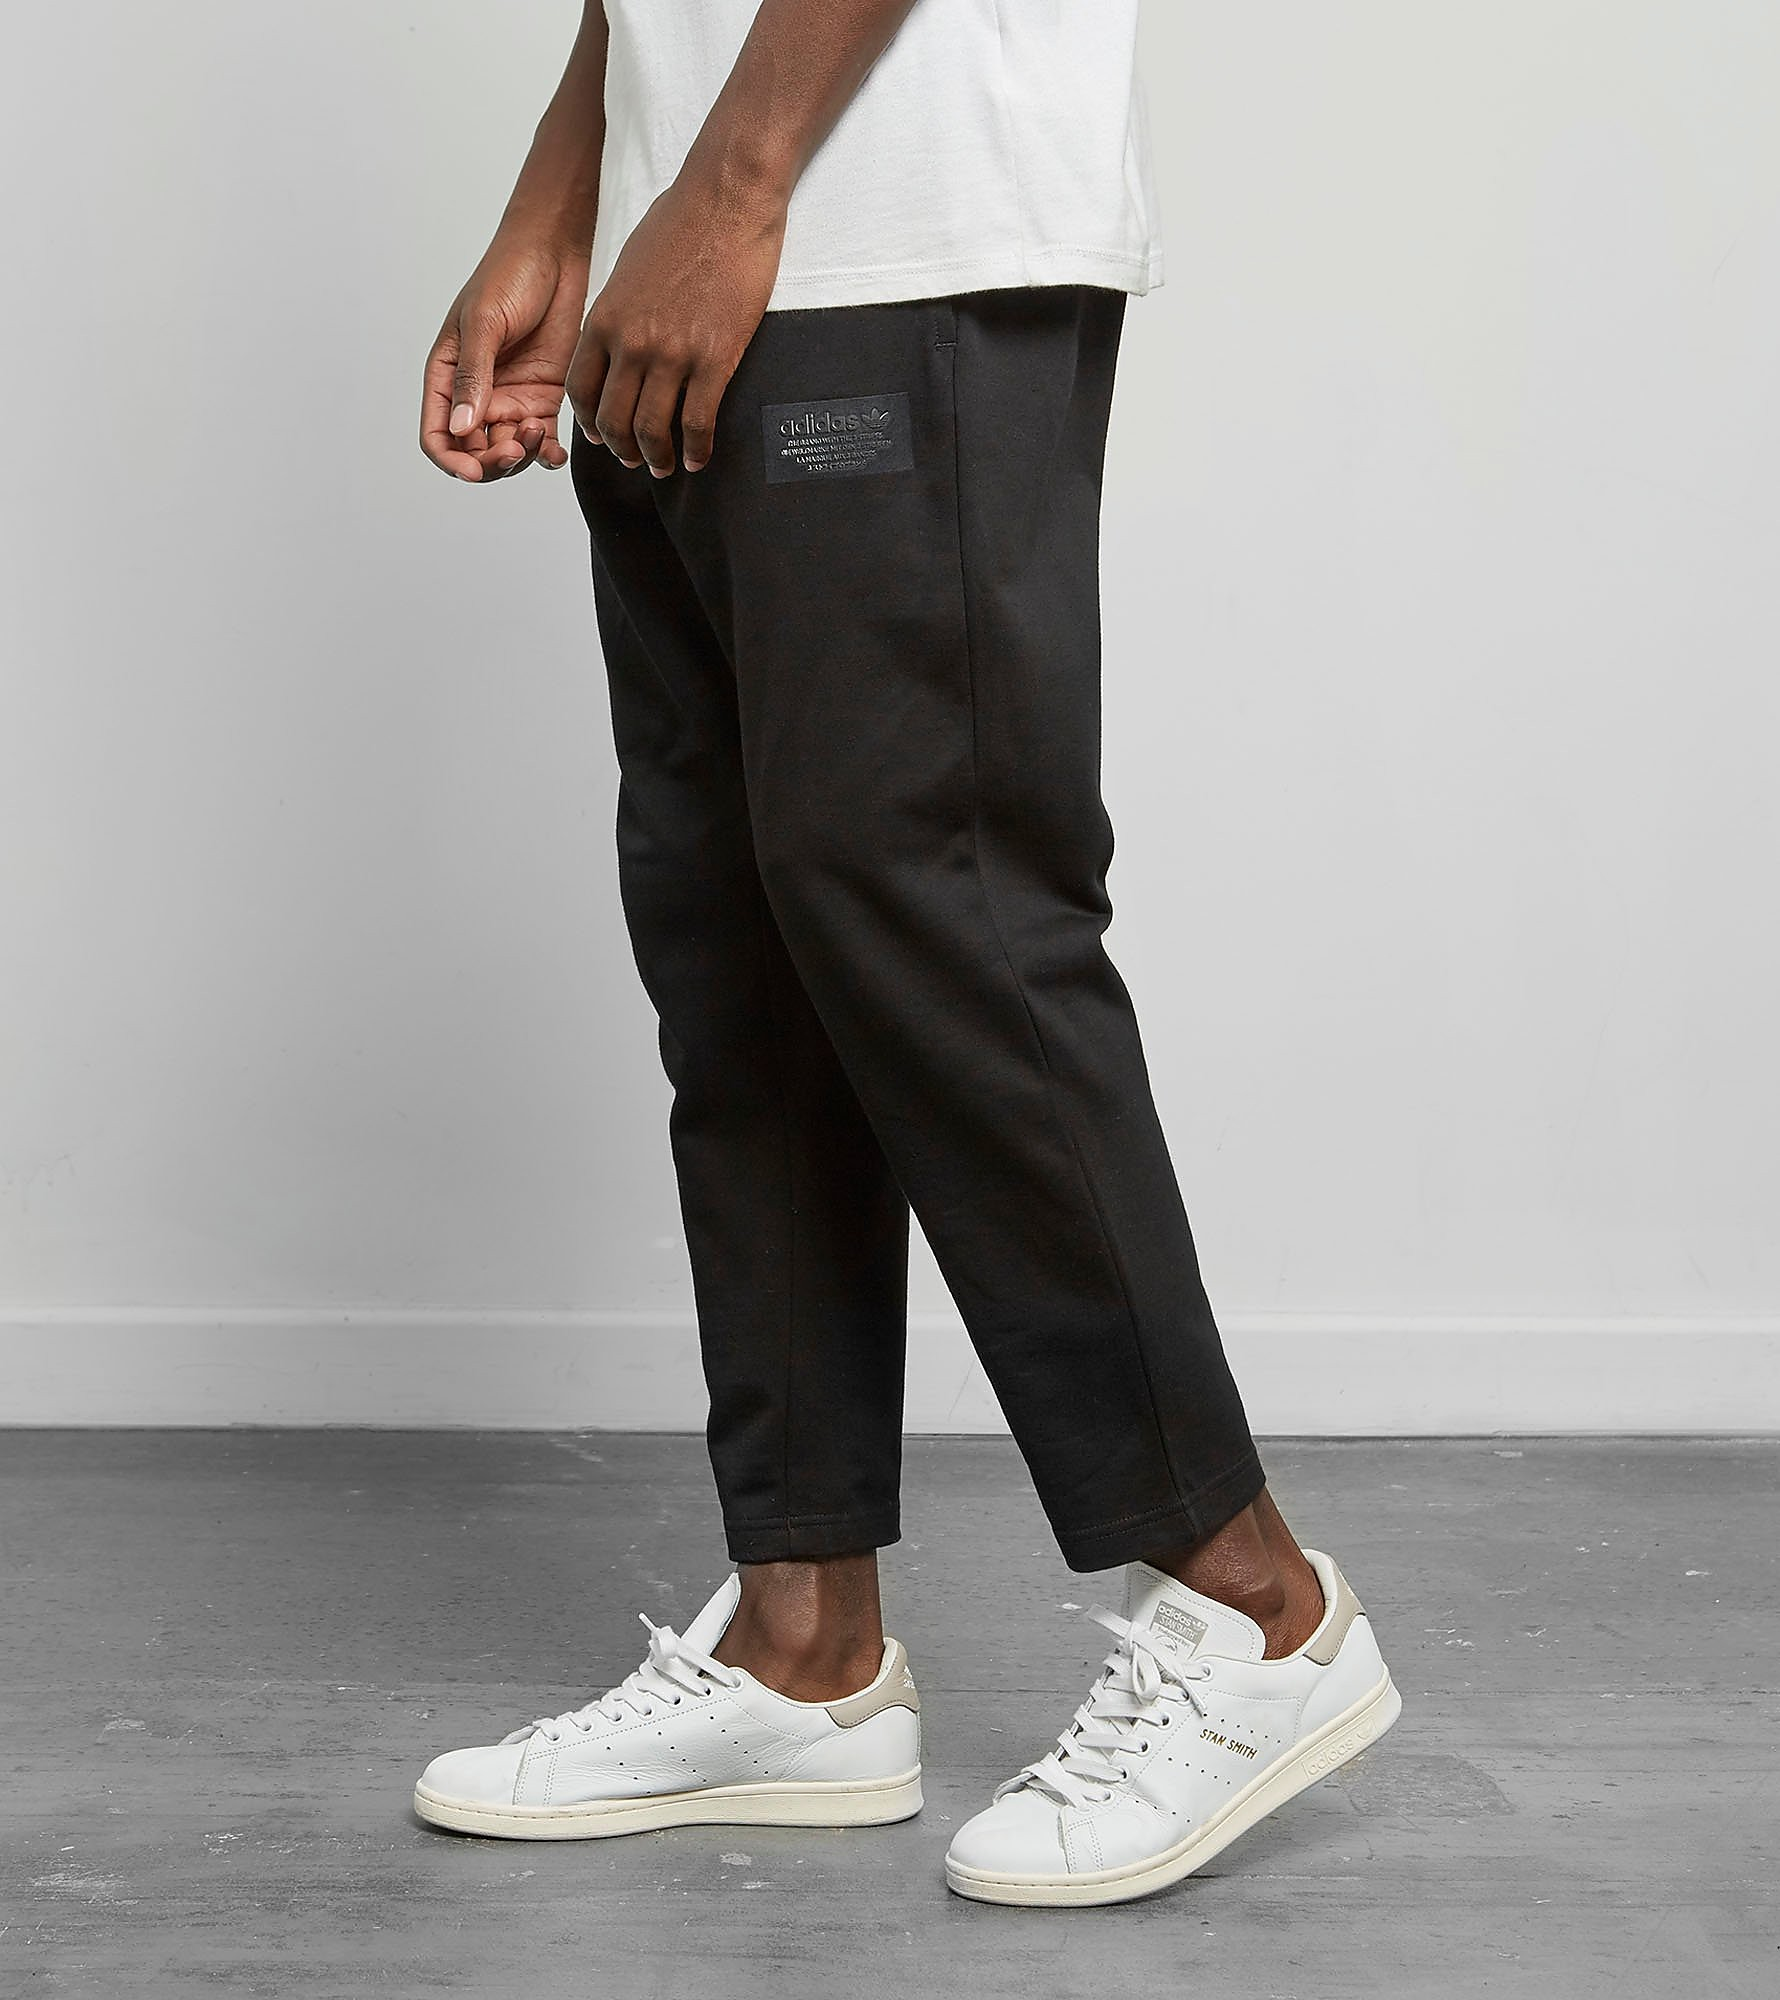 adidas Originals NMD Sweatpants